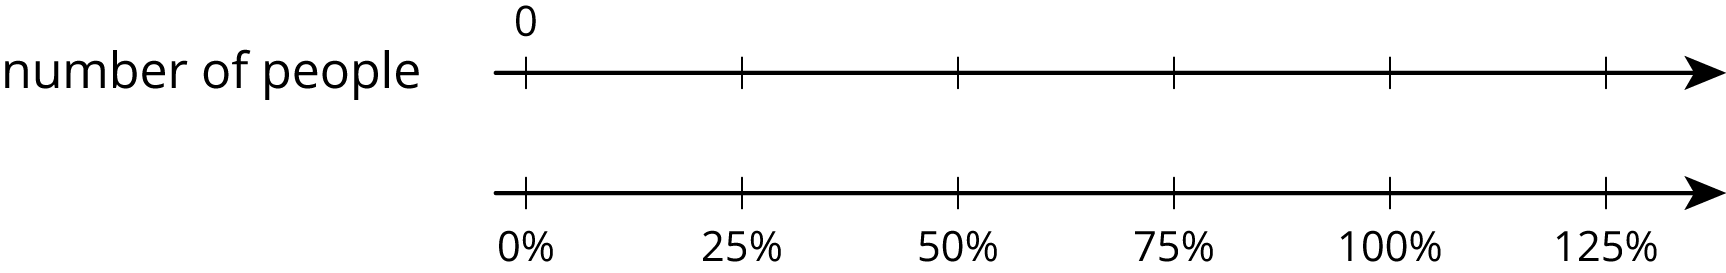 """A double number line for """"number of people"""" with 6 evenly spaced tick marks. For the top number line, the number 0 is on the first tick mark and the remaining tick marks are blank. For the bottom number line, starting with the first tick mark, the percentages 0%, 25%, 50%, 75%, 100%, and 125% are labeled."""